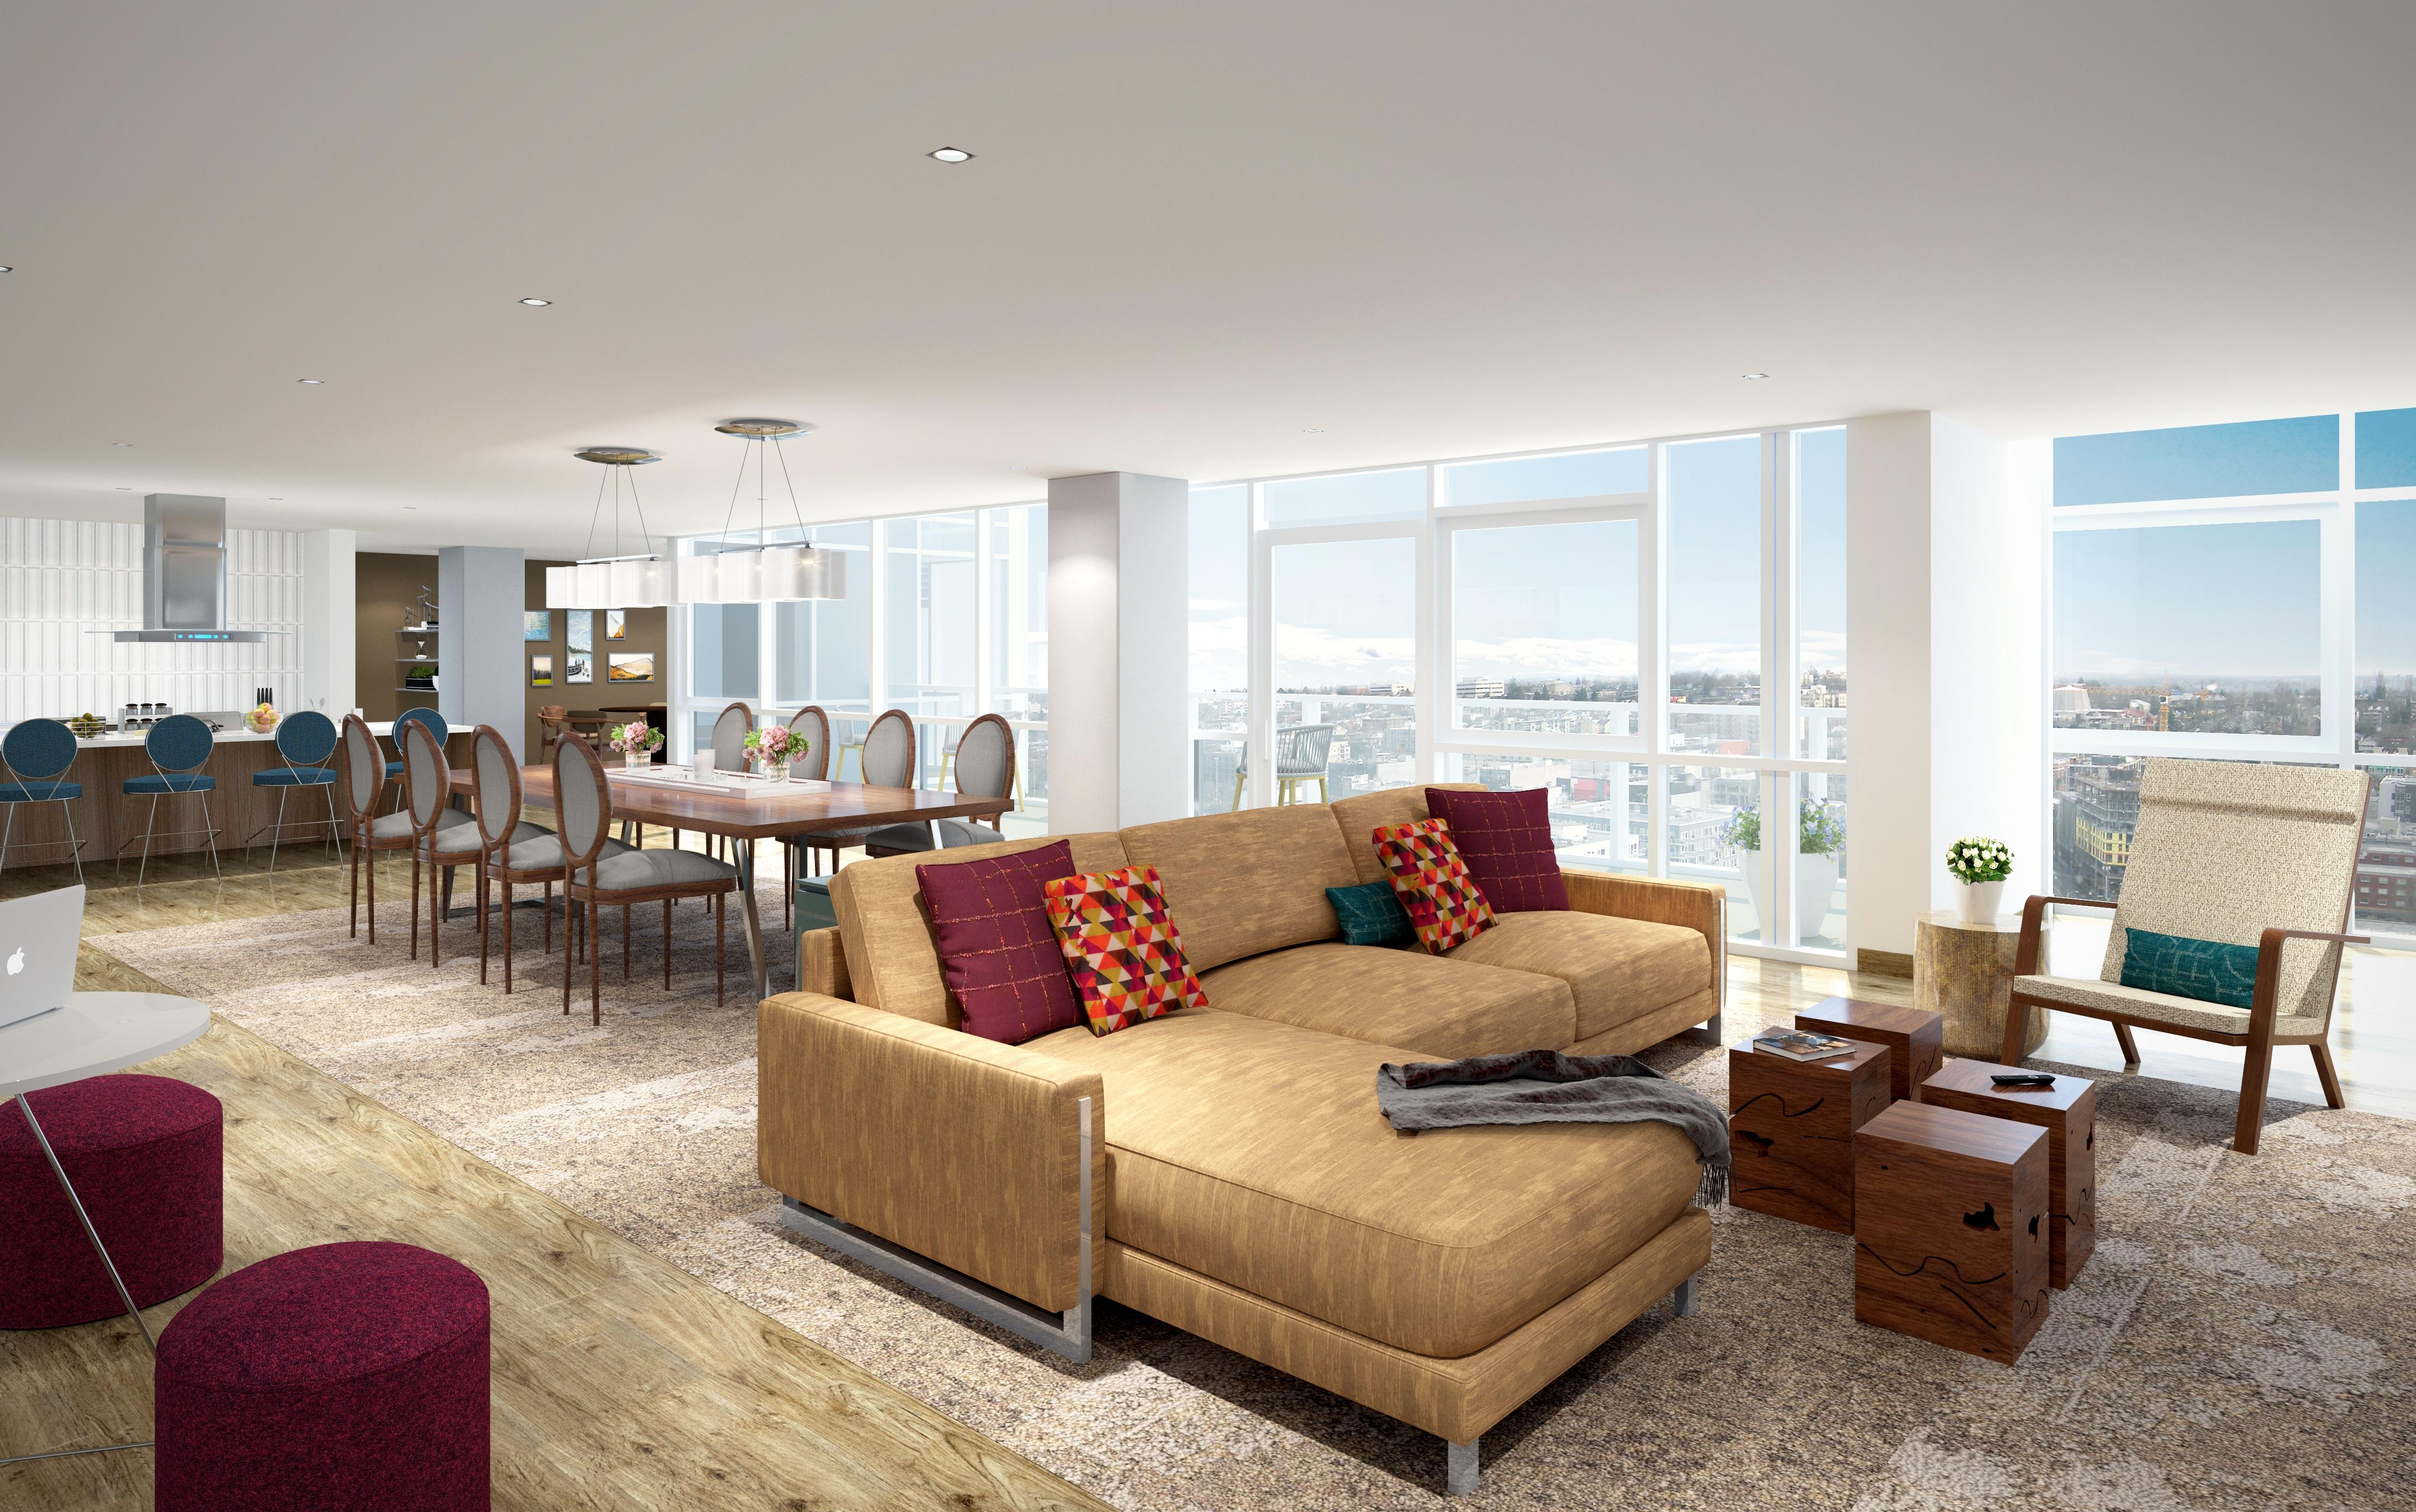 The Viewpoint on Level 16 at The Danforth features dining and lounge seating for entertaing with a view.